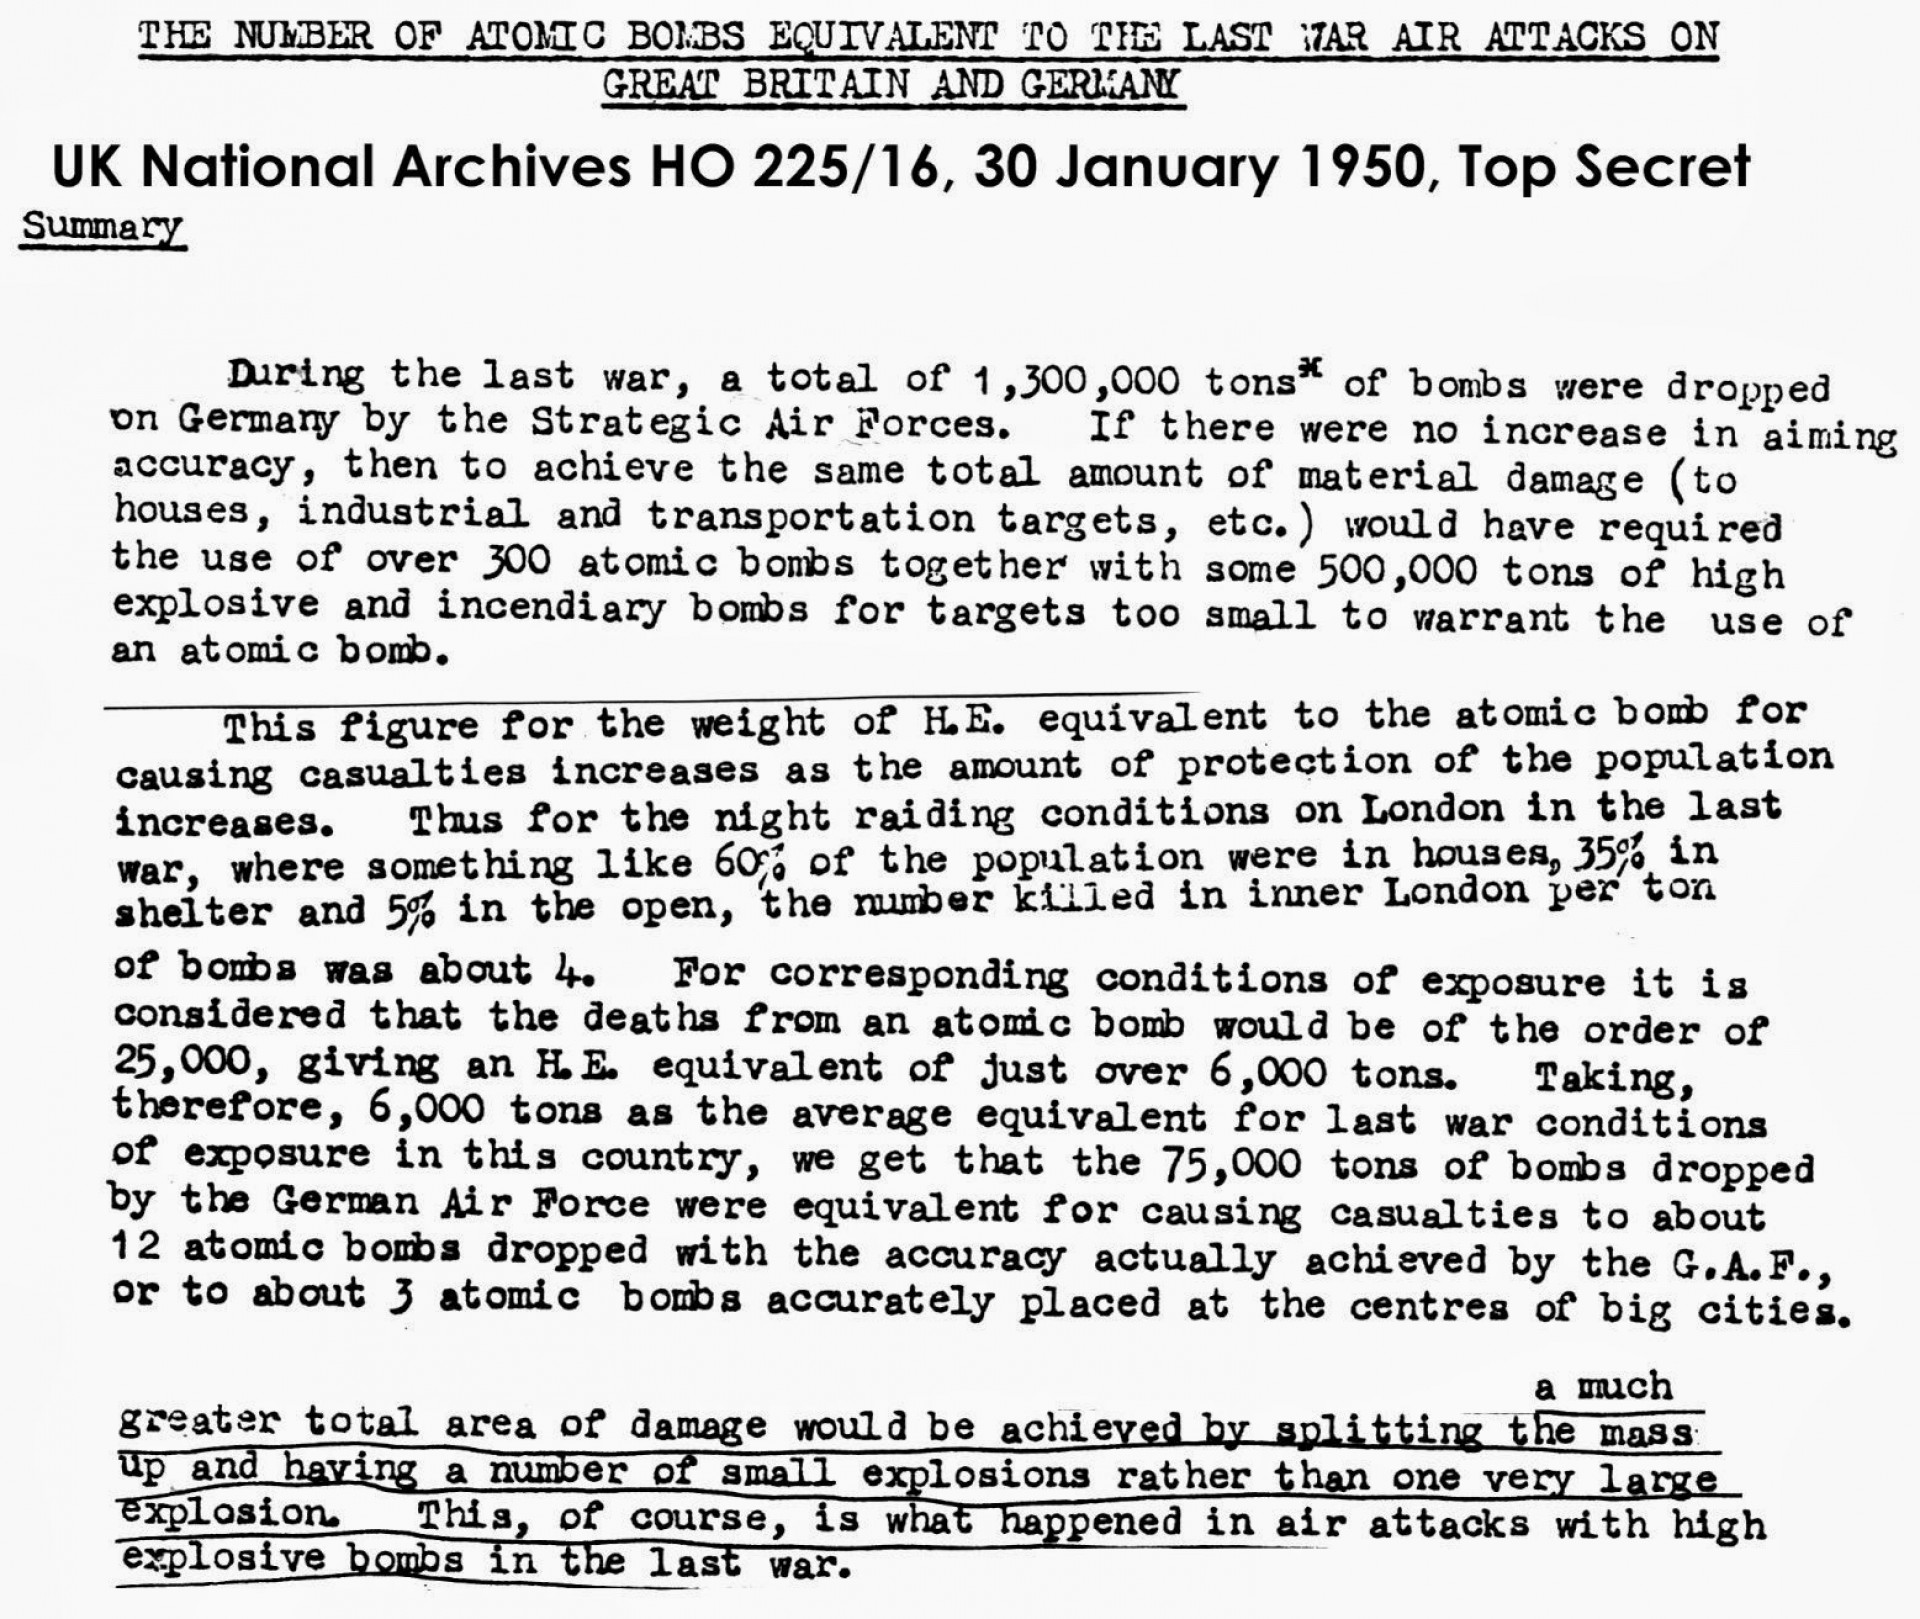 013 Numberofatomicbombs1950 Jpg Atomic Bomb Essay Shocking Outline Conclusion Good Title For 1920